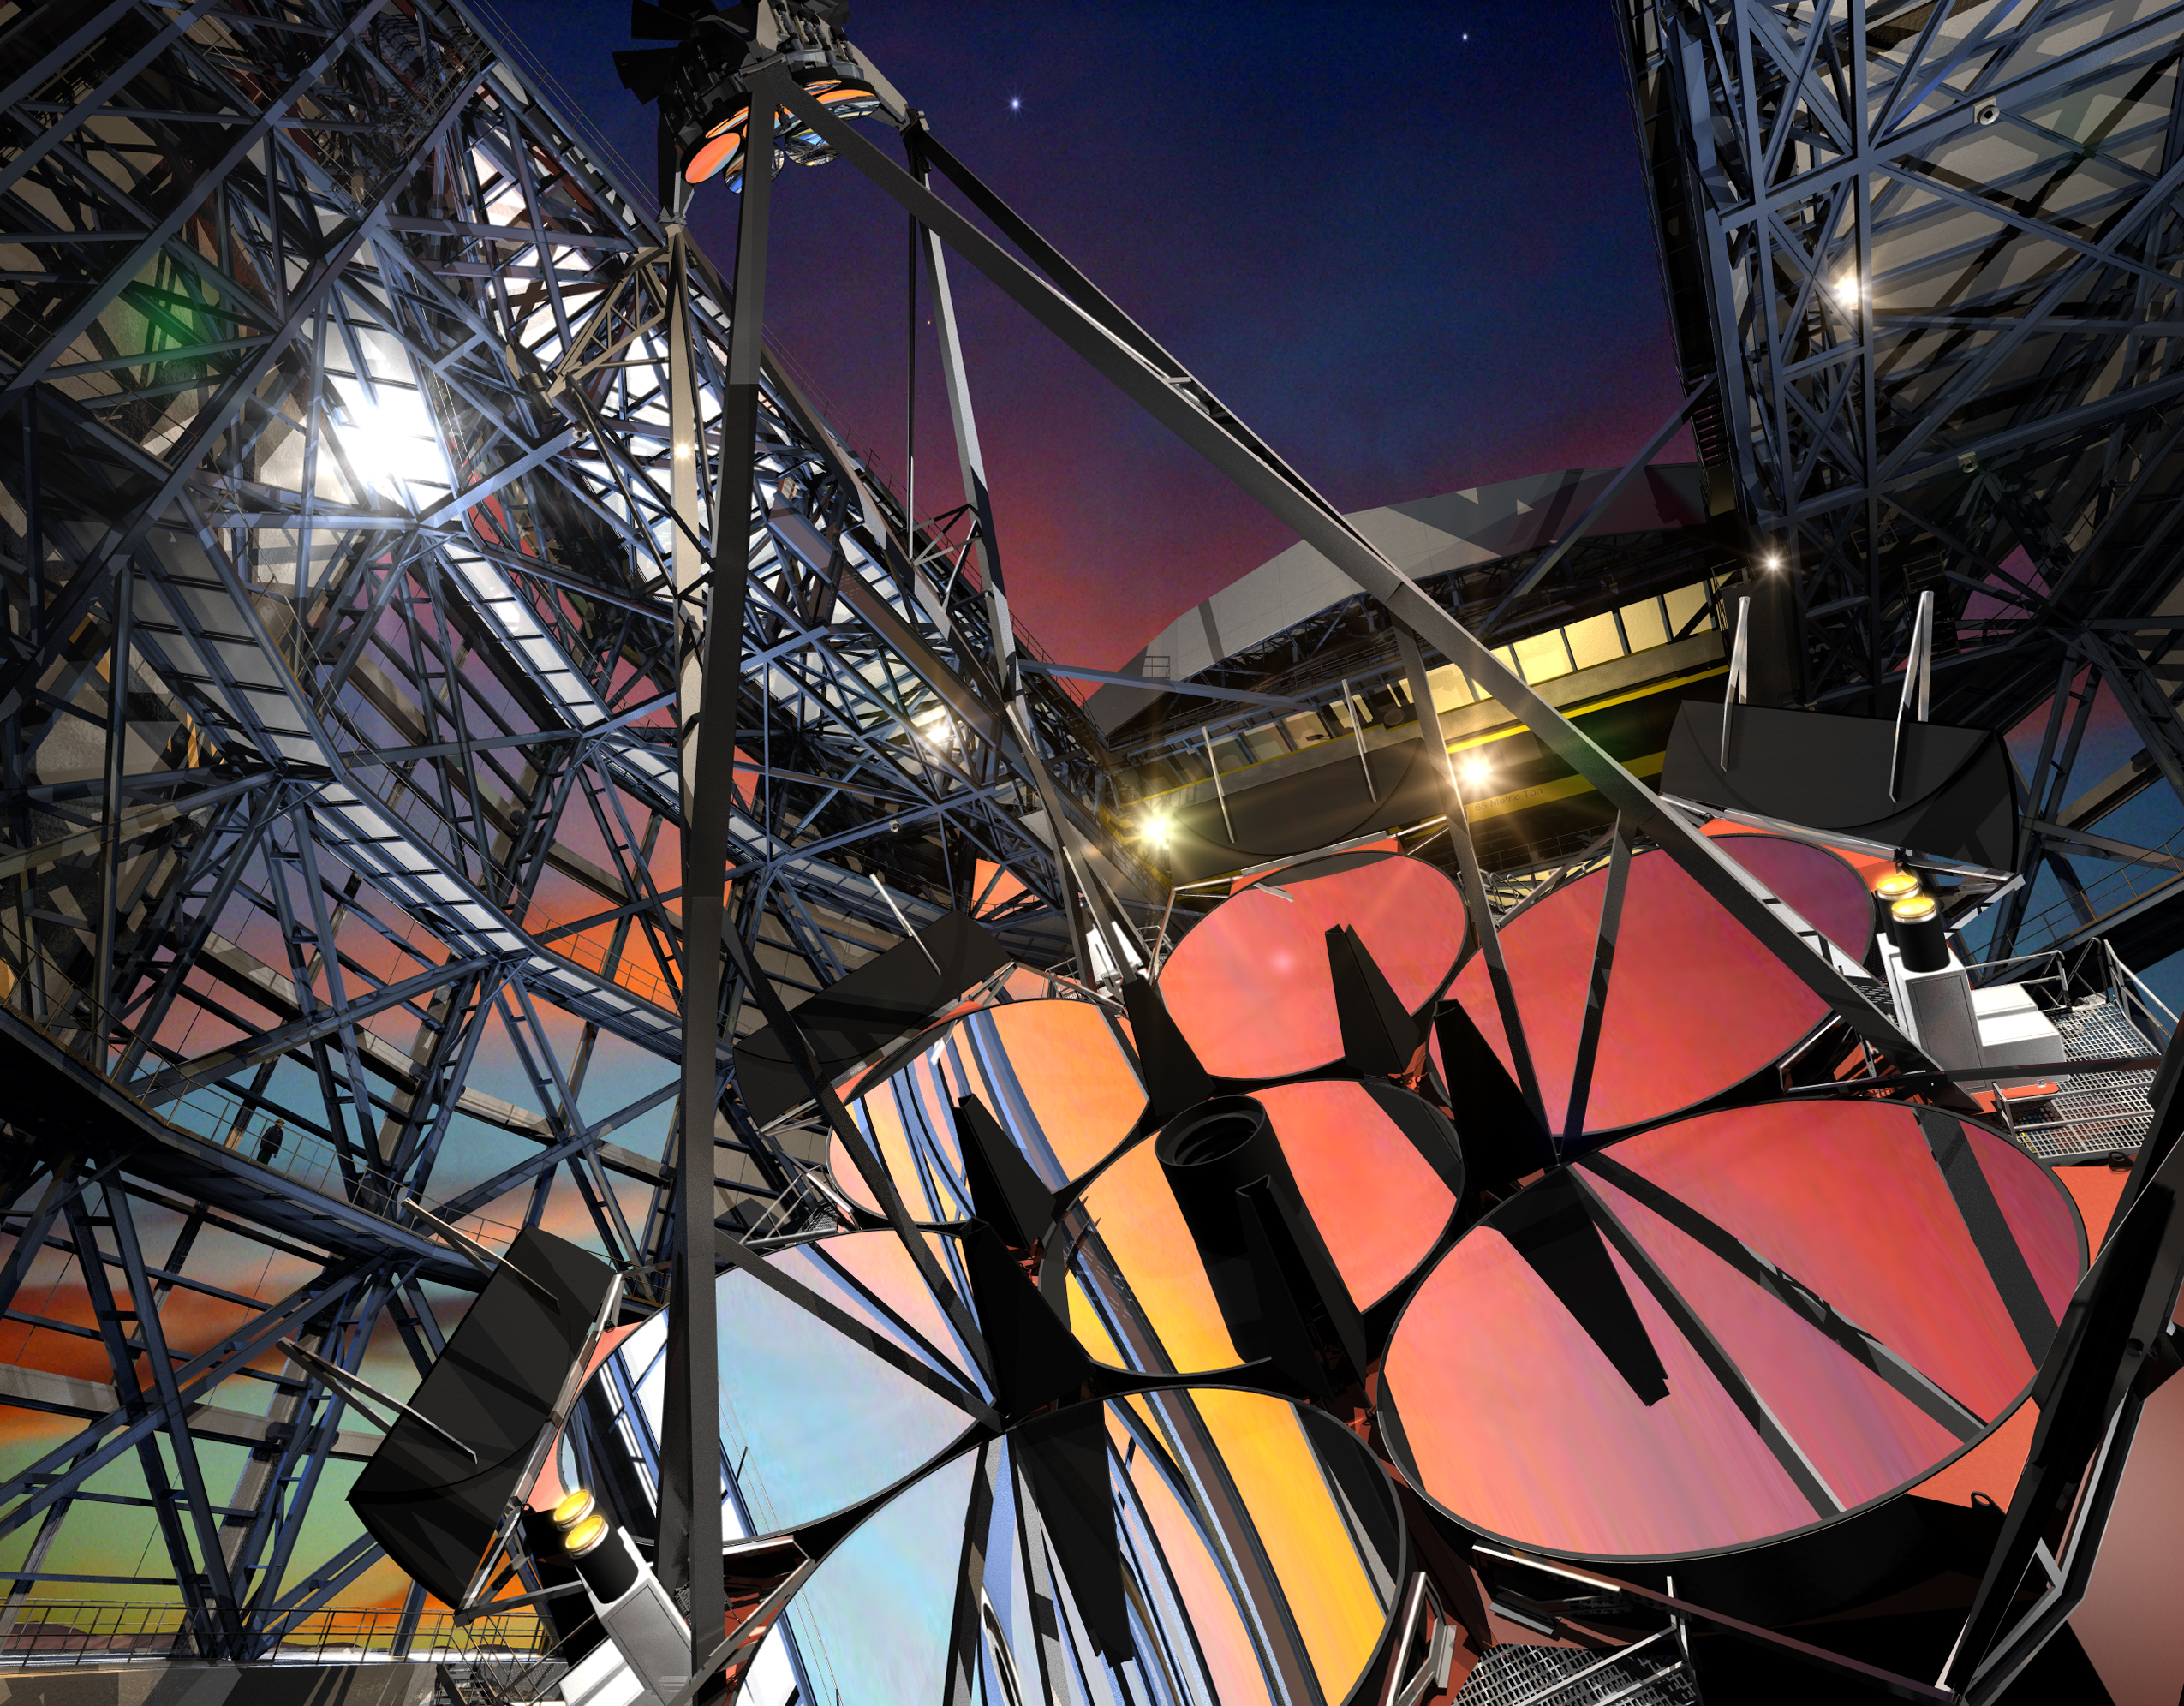 Making the Giant Magellan Telescope's Massive, Incredibly Precise Mirrors